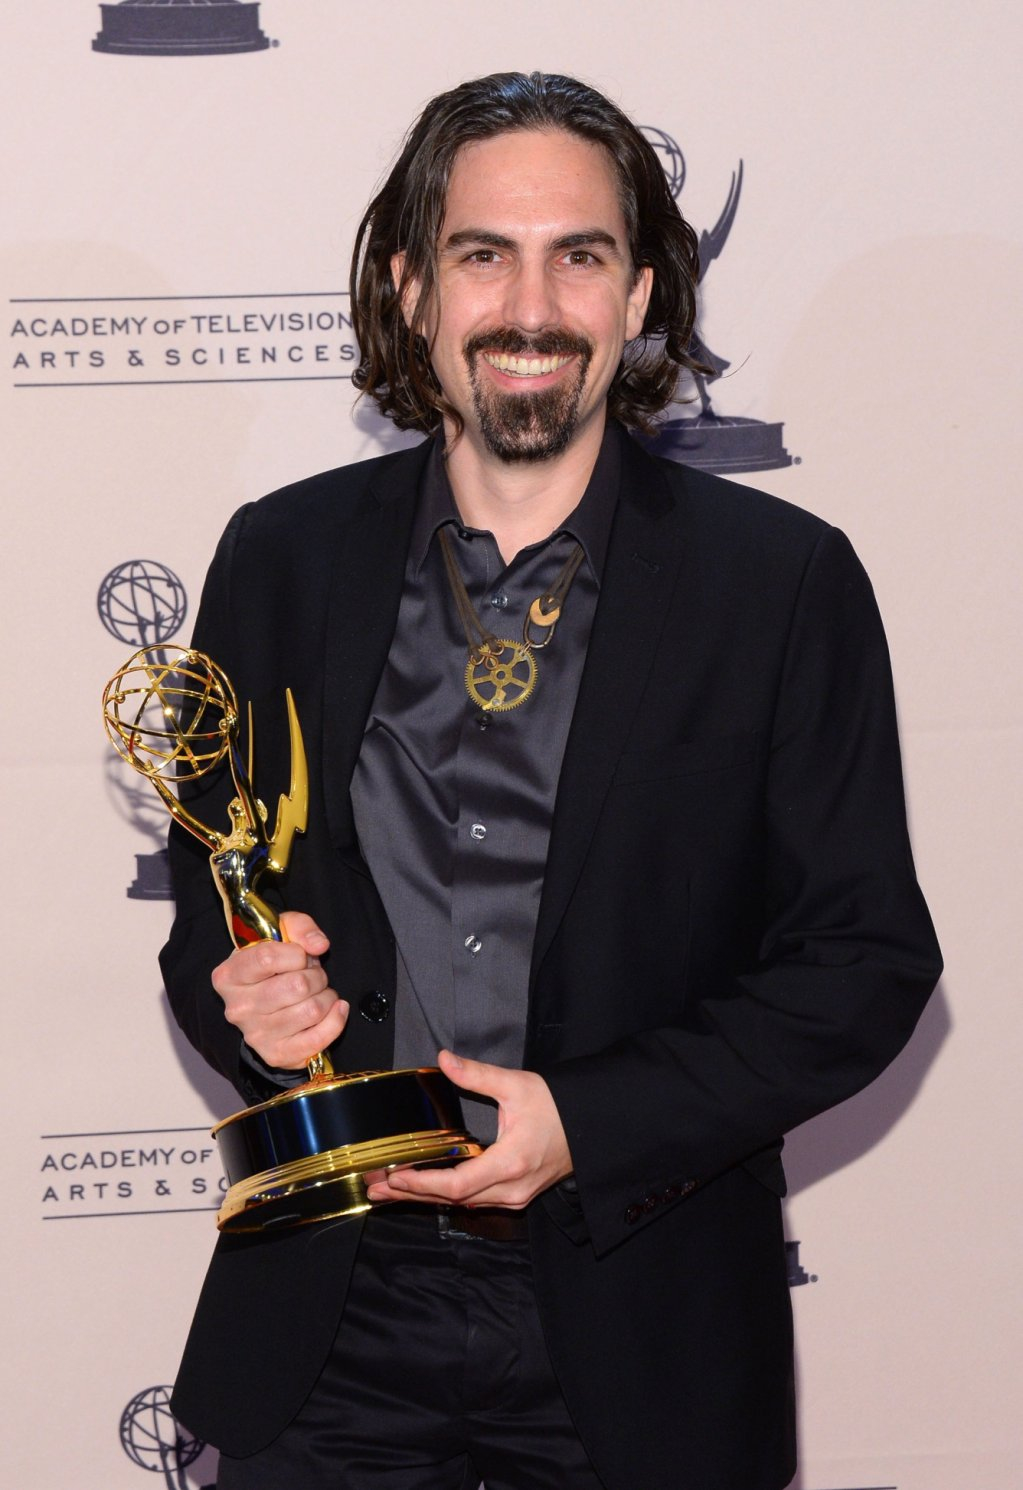 bear mccreary playtestbear mccreary the walking dead, bear mccreary - kara remembers, bear mccreary – black sails, bear mccreary black mirror, bear mccreary constantine, bear mccreary вики, bear mccreary скачать, bear mccreary the hand, bear mccreary the walking dead mp3, bear mccreary the walking dead скачать, bear mccreary prelude to war, bear mccreary walking dead theme, bear mccreary constantine ost, bear mccreary battlestar galactica, bear mccreary god of war, bear mccreary playtest, bear mccreary overture, bear mccreary - the mercy of the living, bear mccreary – reconciliation, bear mccreary in memoriam